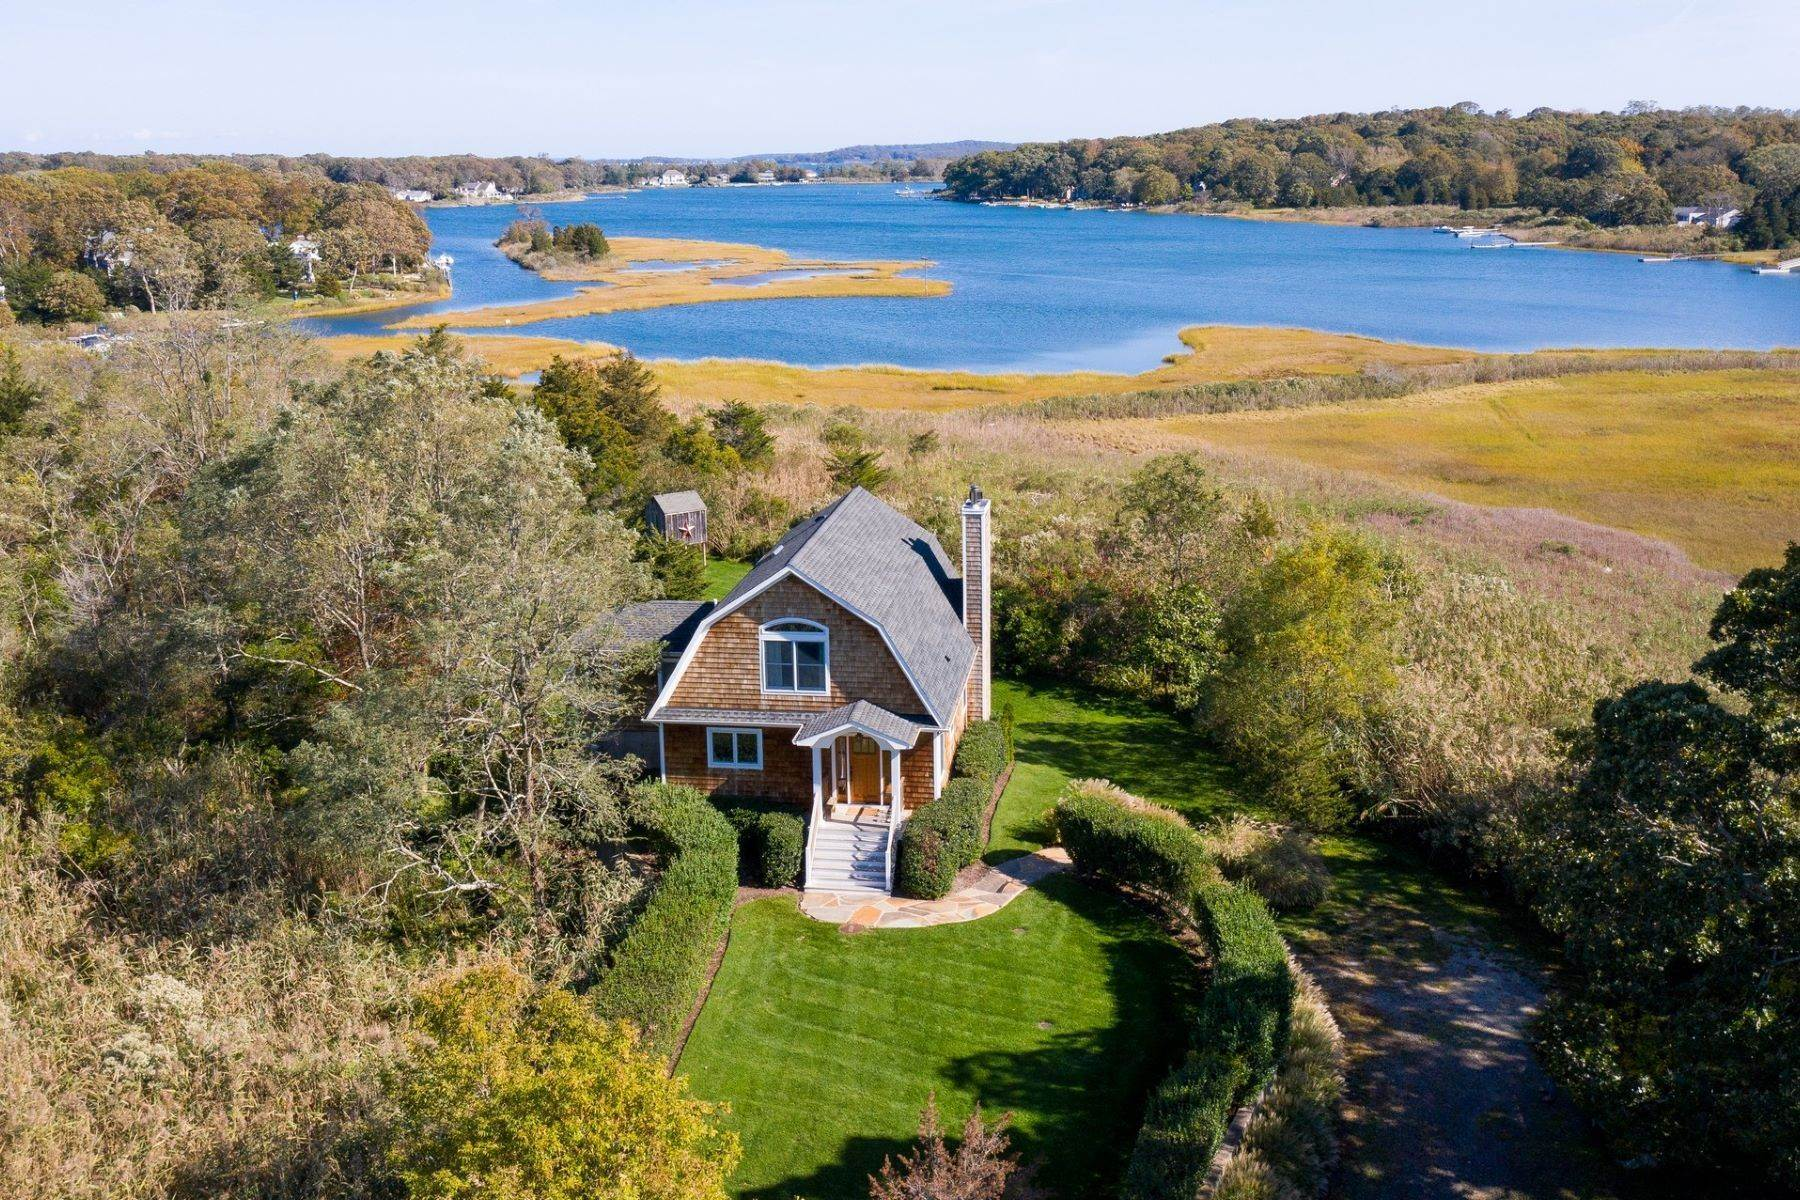 Single Family Homes for Sale at 5503 Main Bayview Avenue, Southold, Ny, 11971 5503 Main Bayview Avenue Southold, New York 11971 United States